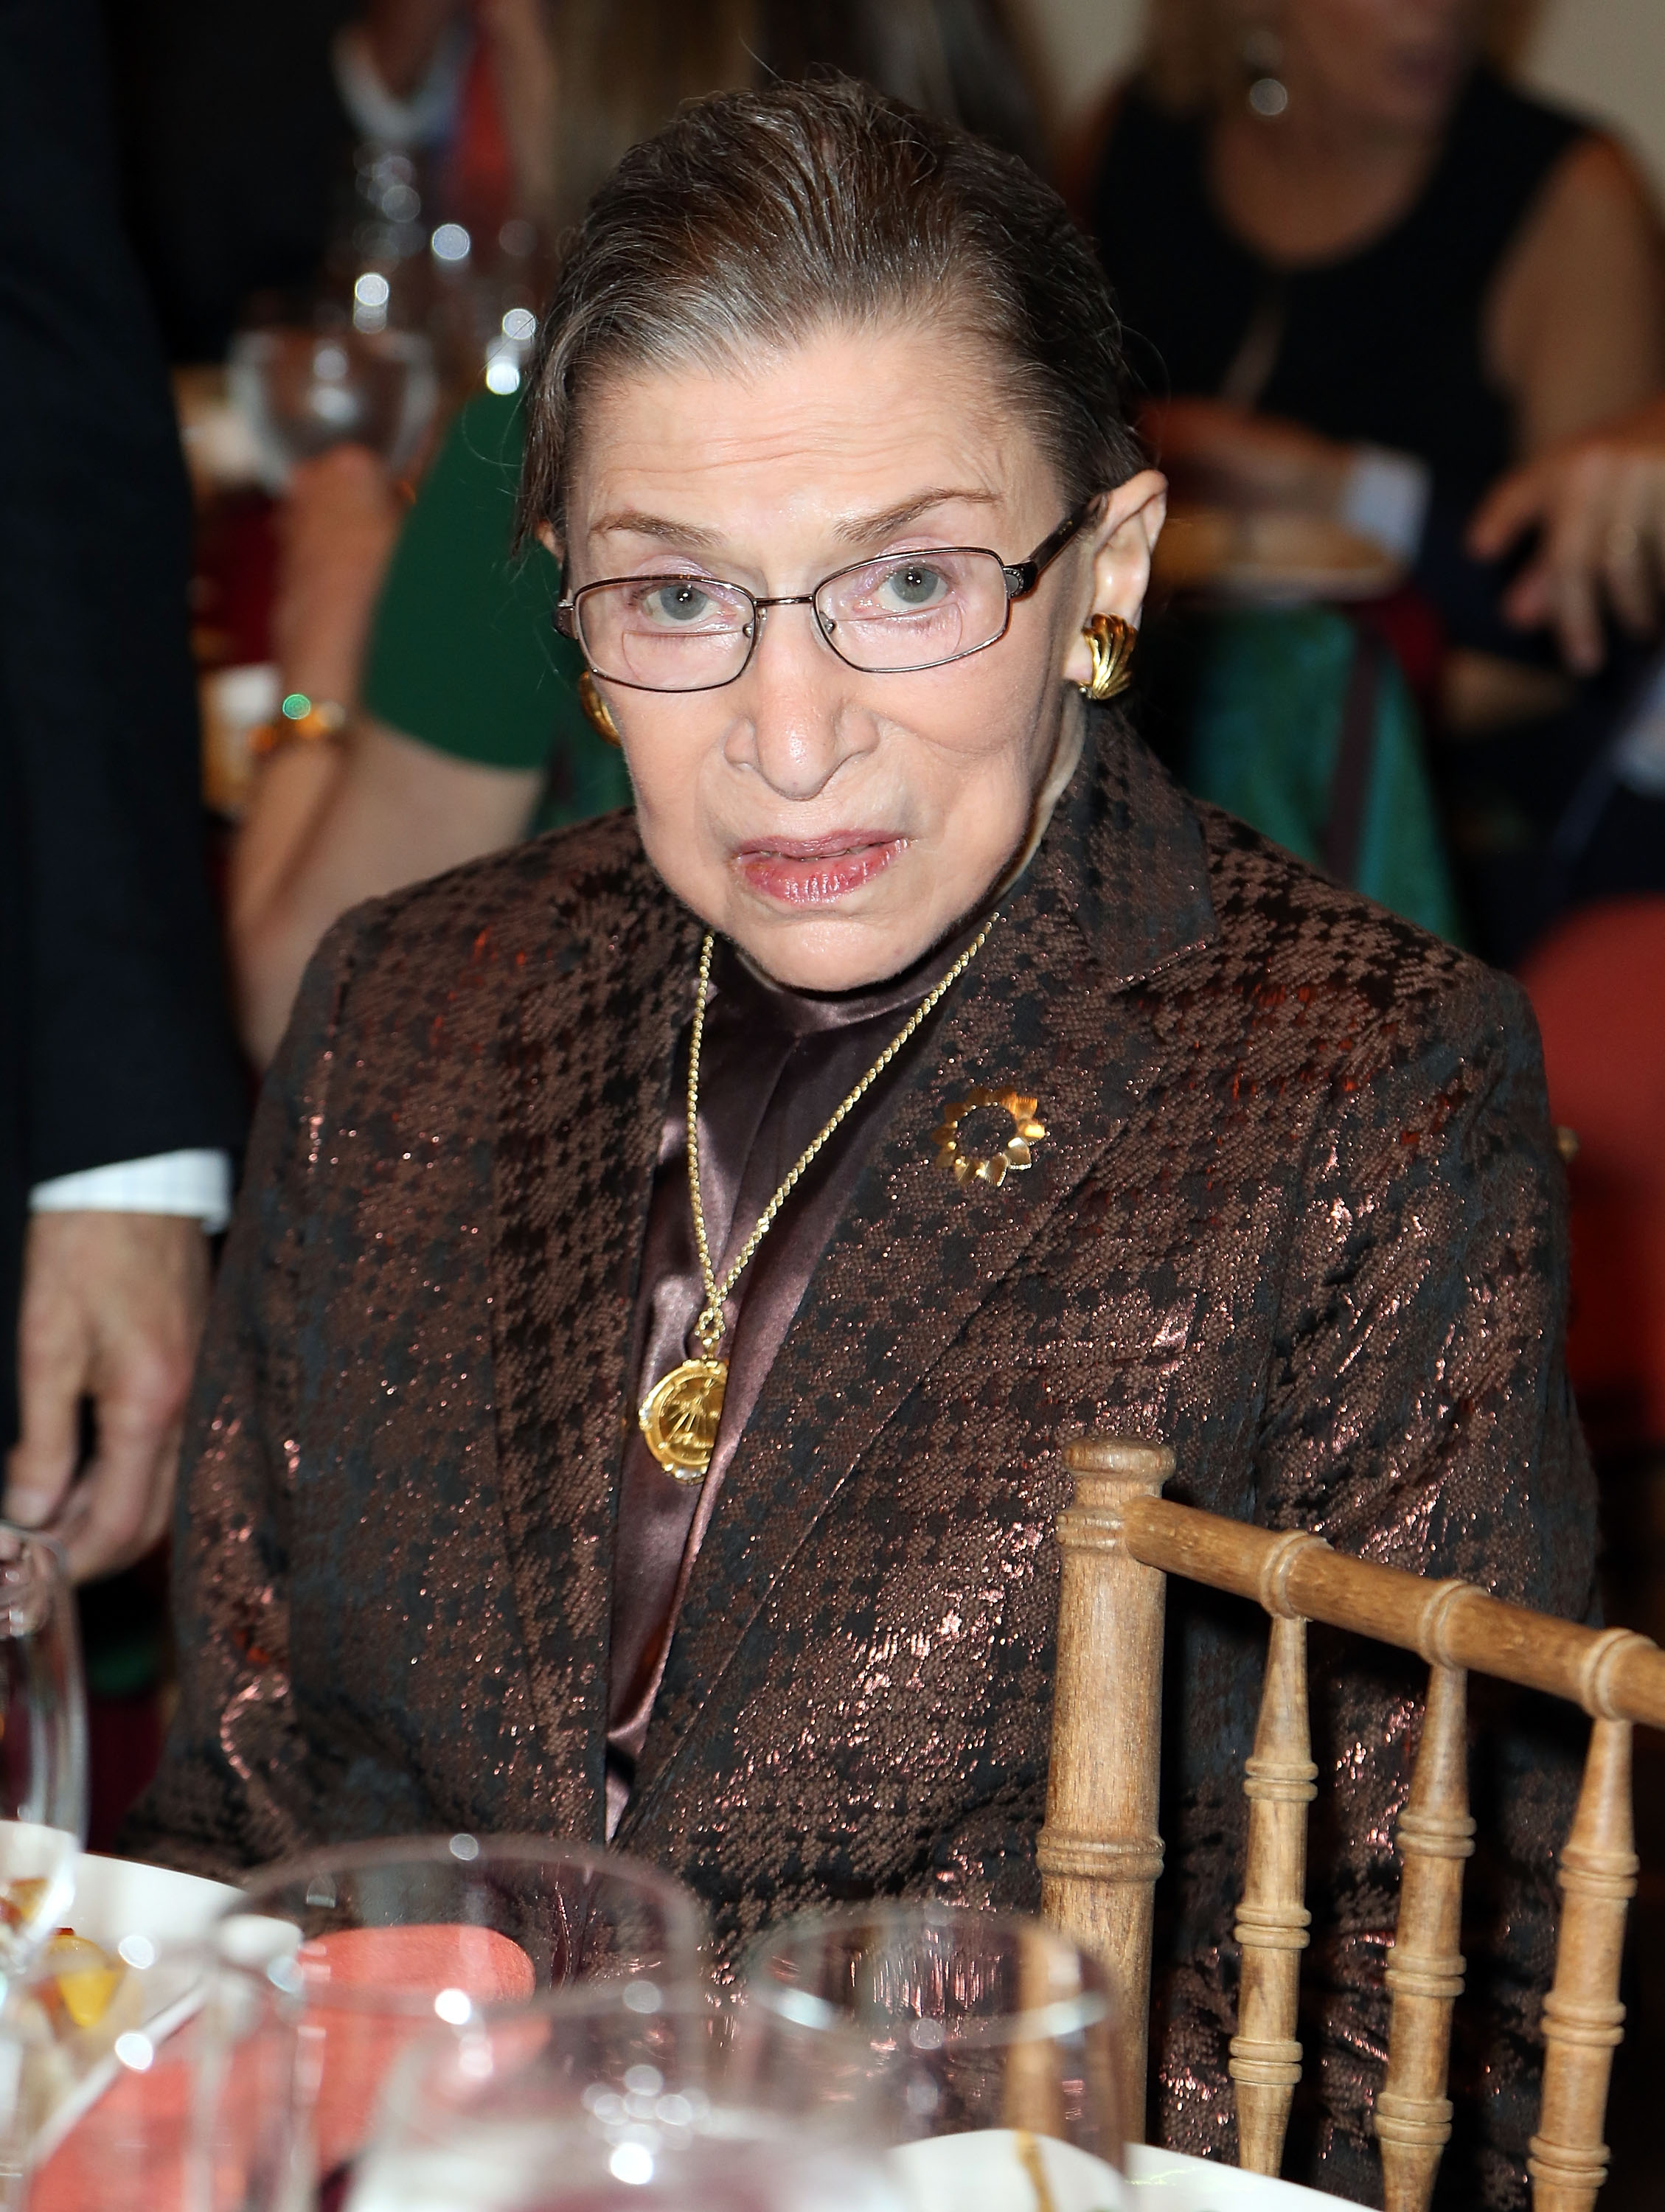 Honorable Ruth Bader Ginsburg, Associate Justice of Supreme Court of the United States, attends Richard Tucker Music Foundation's 38th annual gala at Avery Fisher Hall, Lincoln Center on November 17, 2013 in New York City.